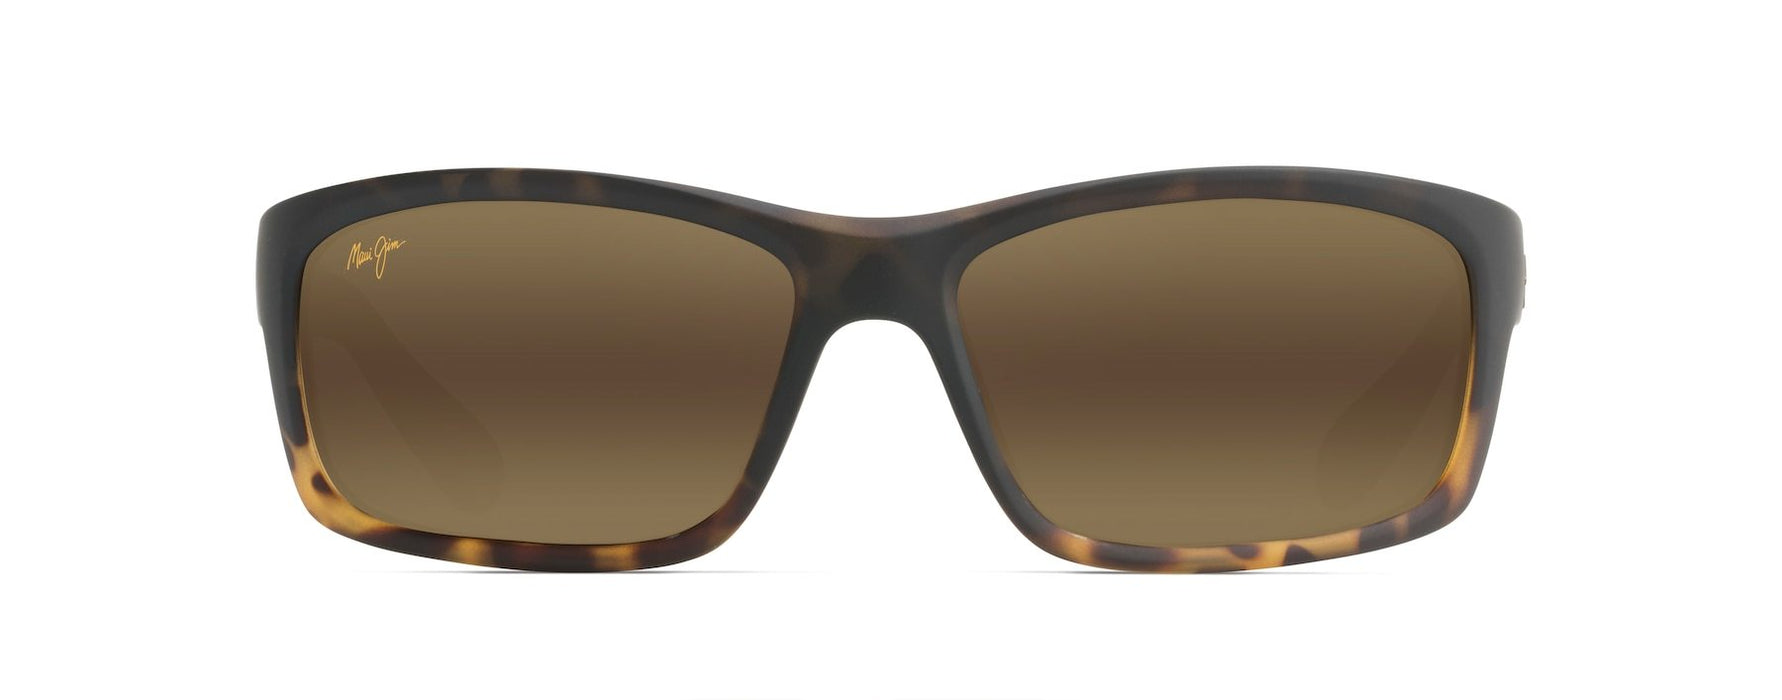 MyMaui Kanaio Coast MM766-019 Sunglasses